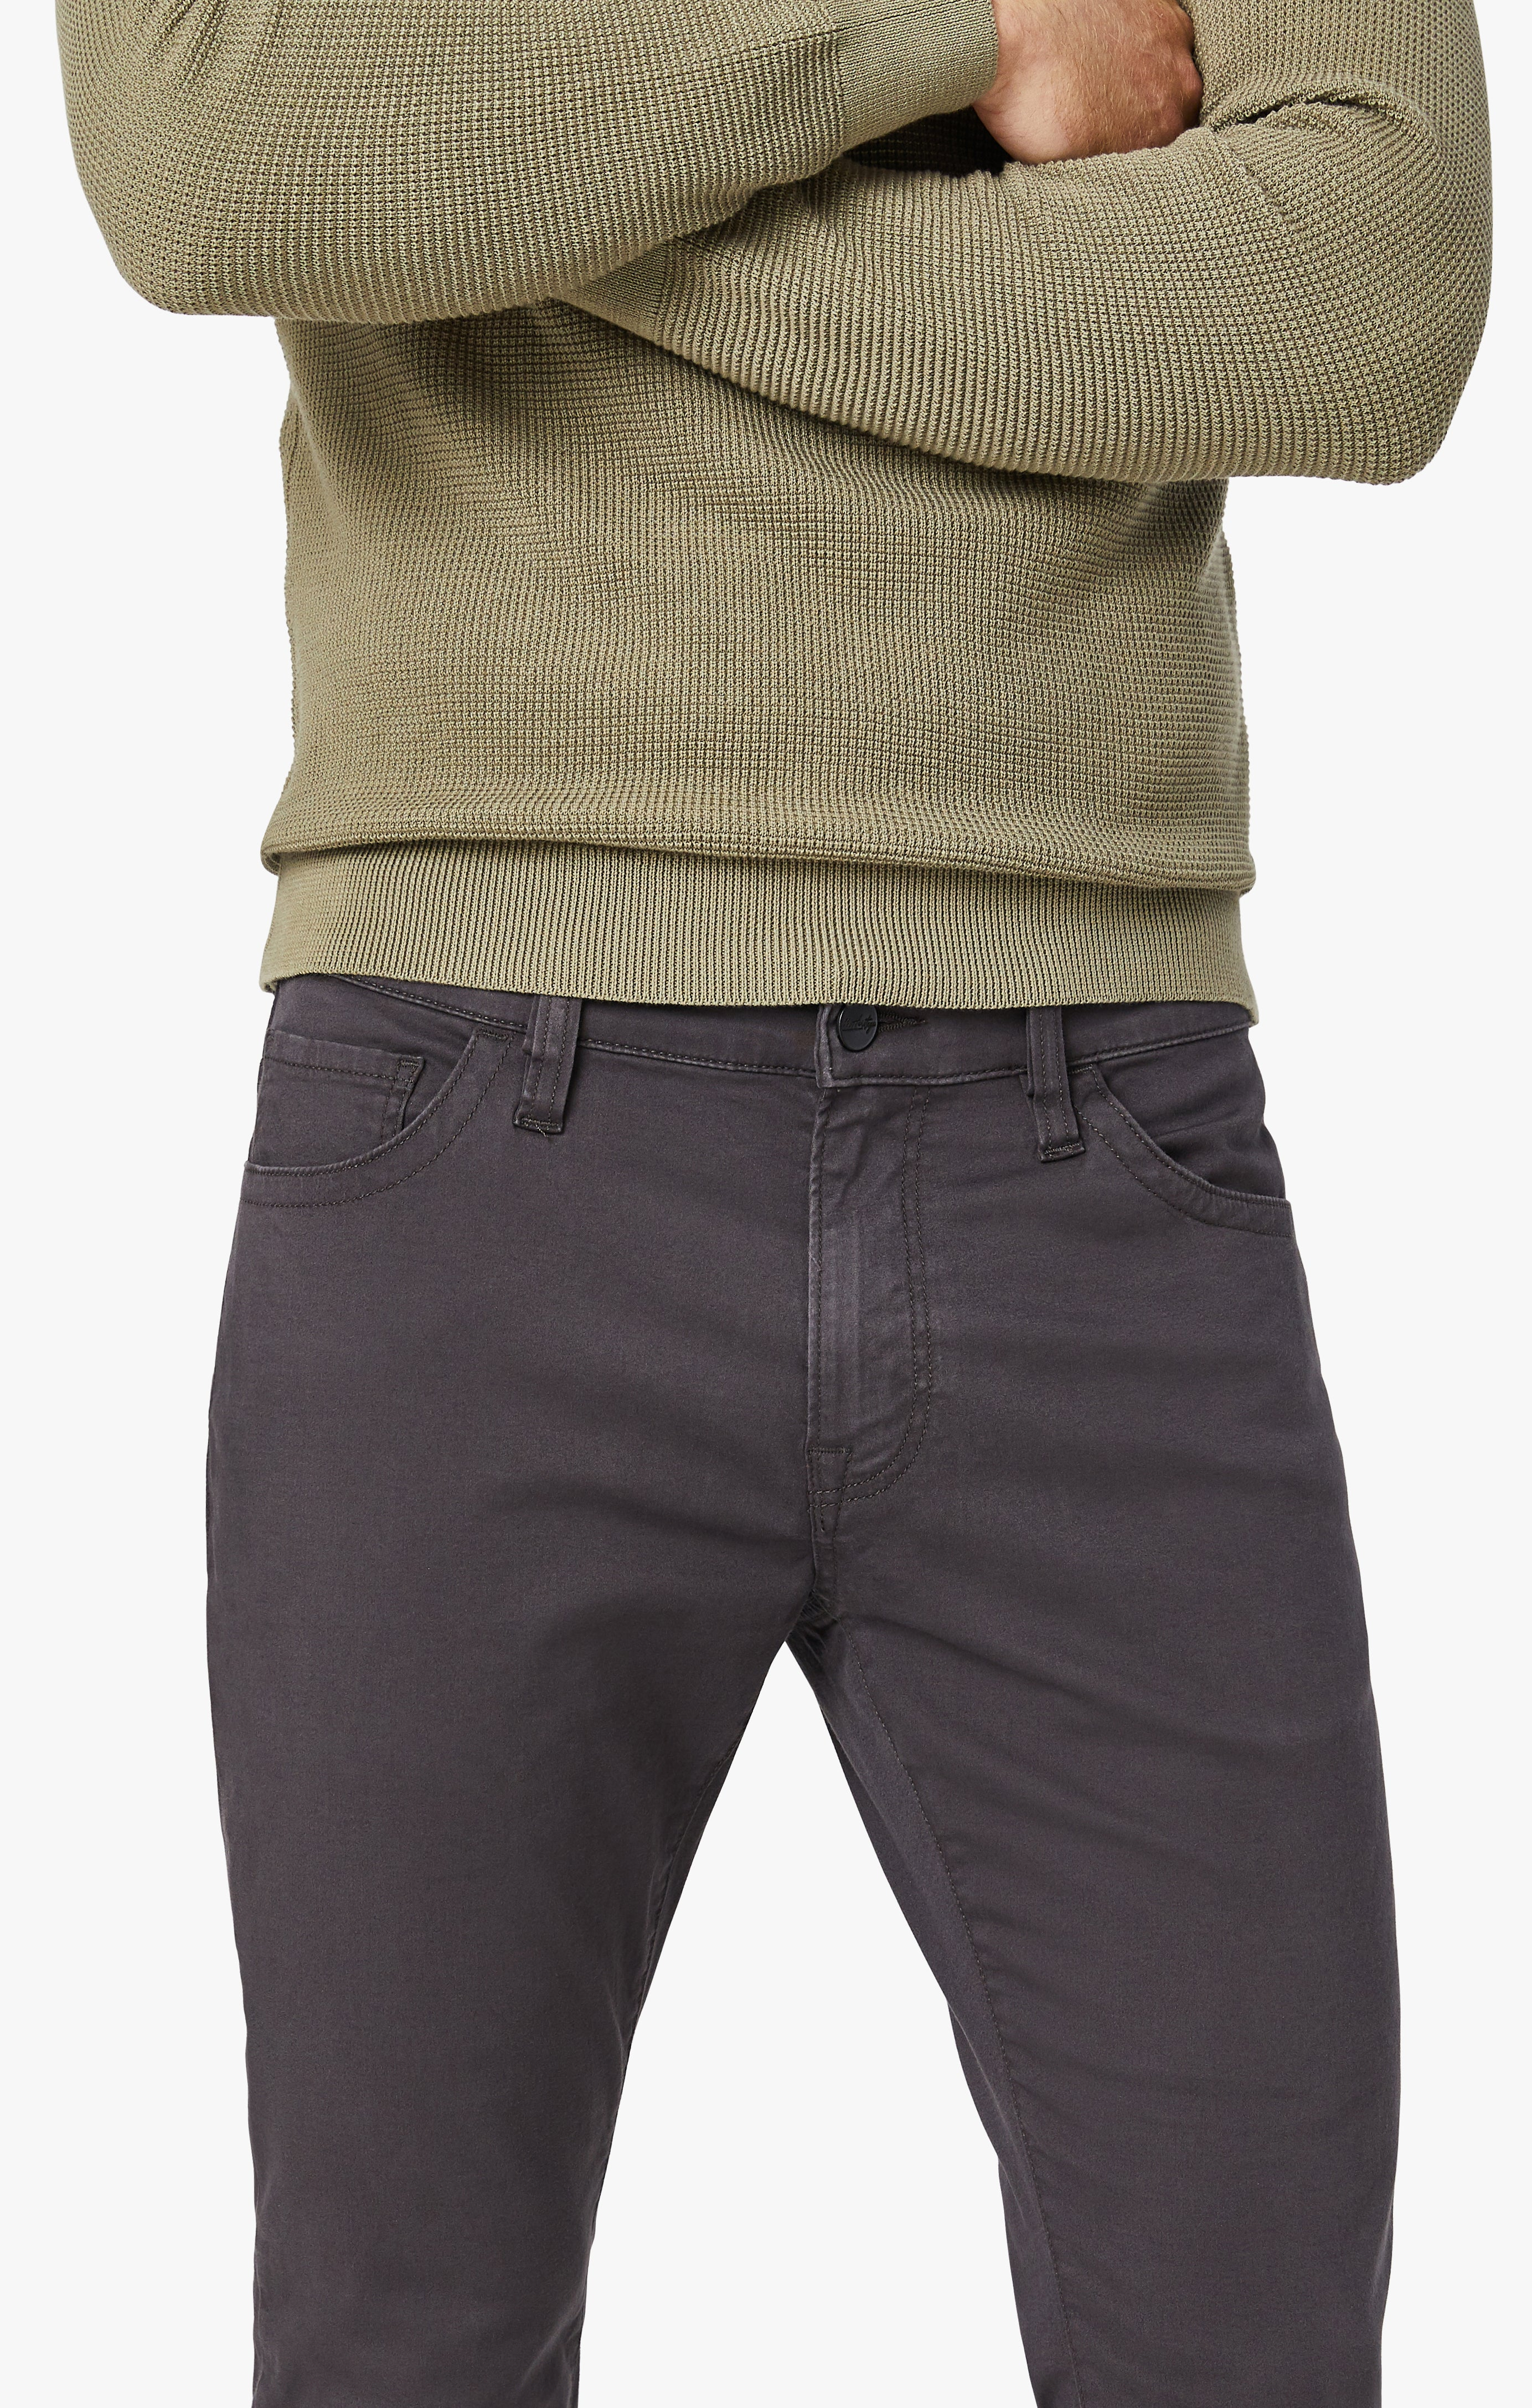 Cool Tapered Leg Pants In Anthracite Twill Image 6